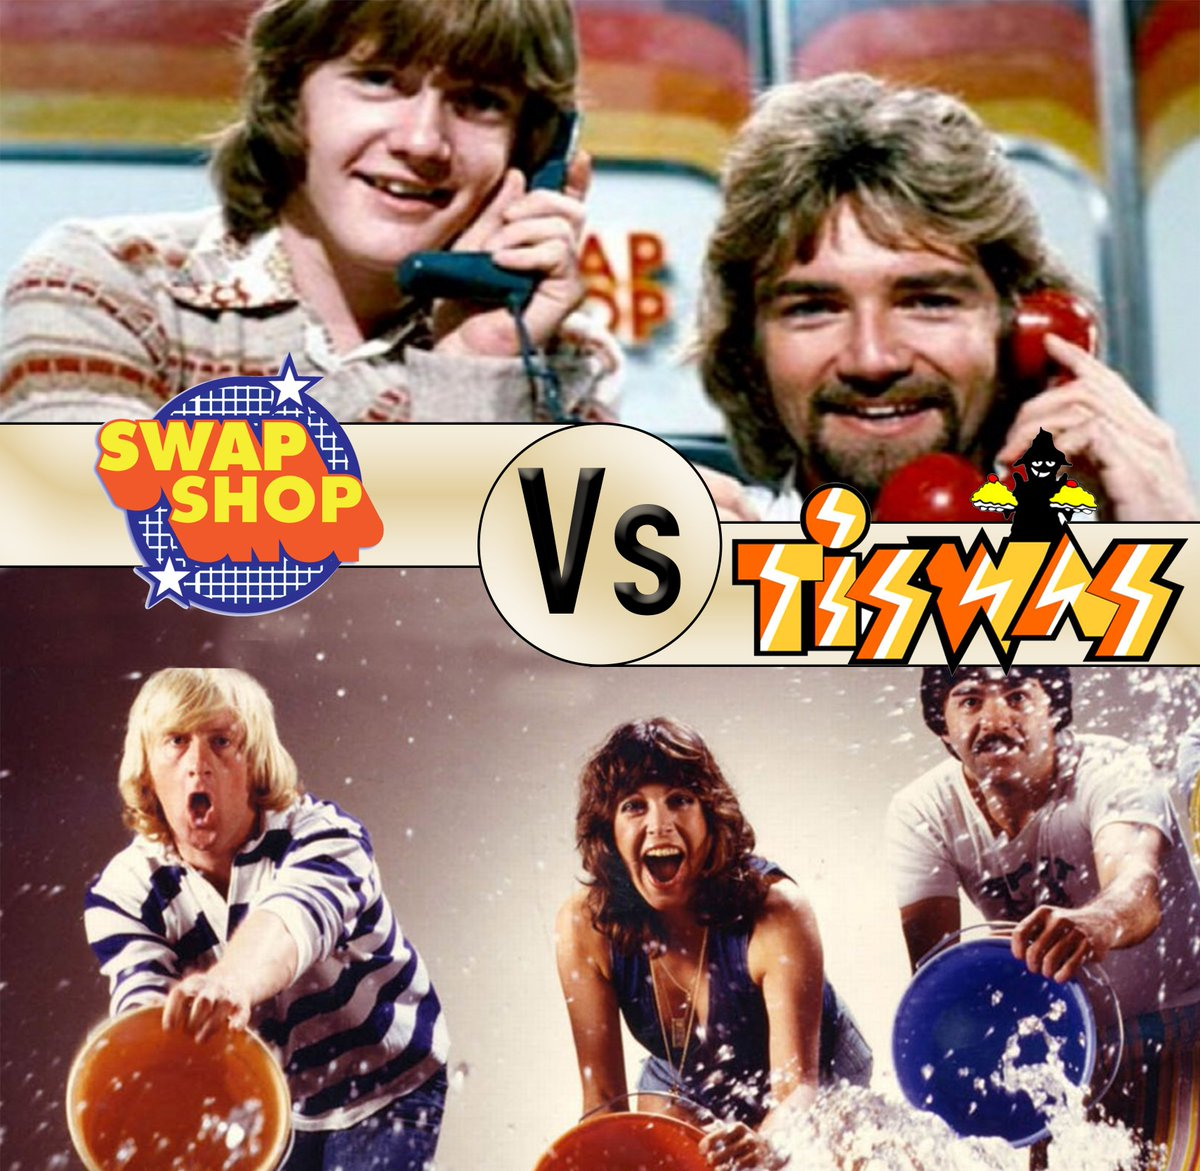 #TuesdayFavourites What was your Saturday morning favourite - Swap Shop or TISWAS? #RT for a chance to #WIN a bottle of our #Prosecco <br>http://pic.twitter.com/kYyWXNAjmc